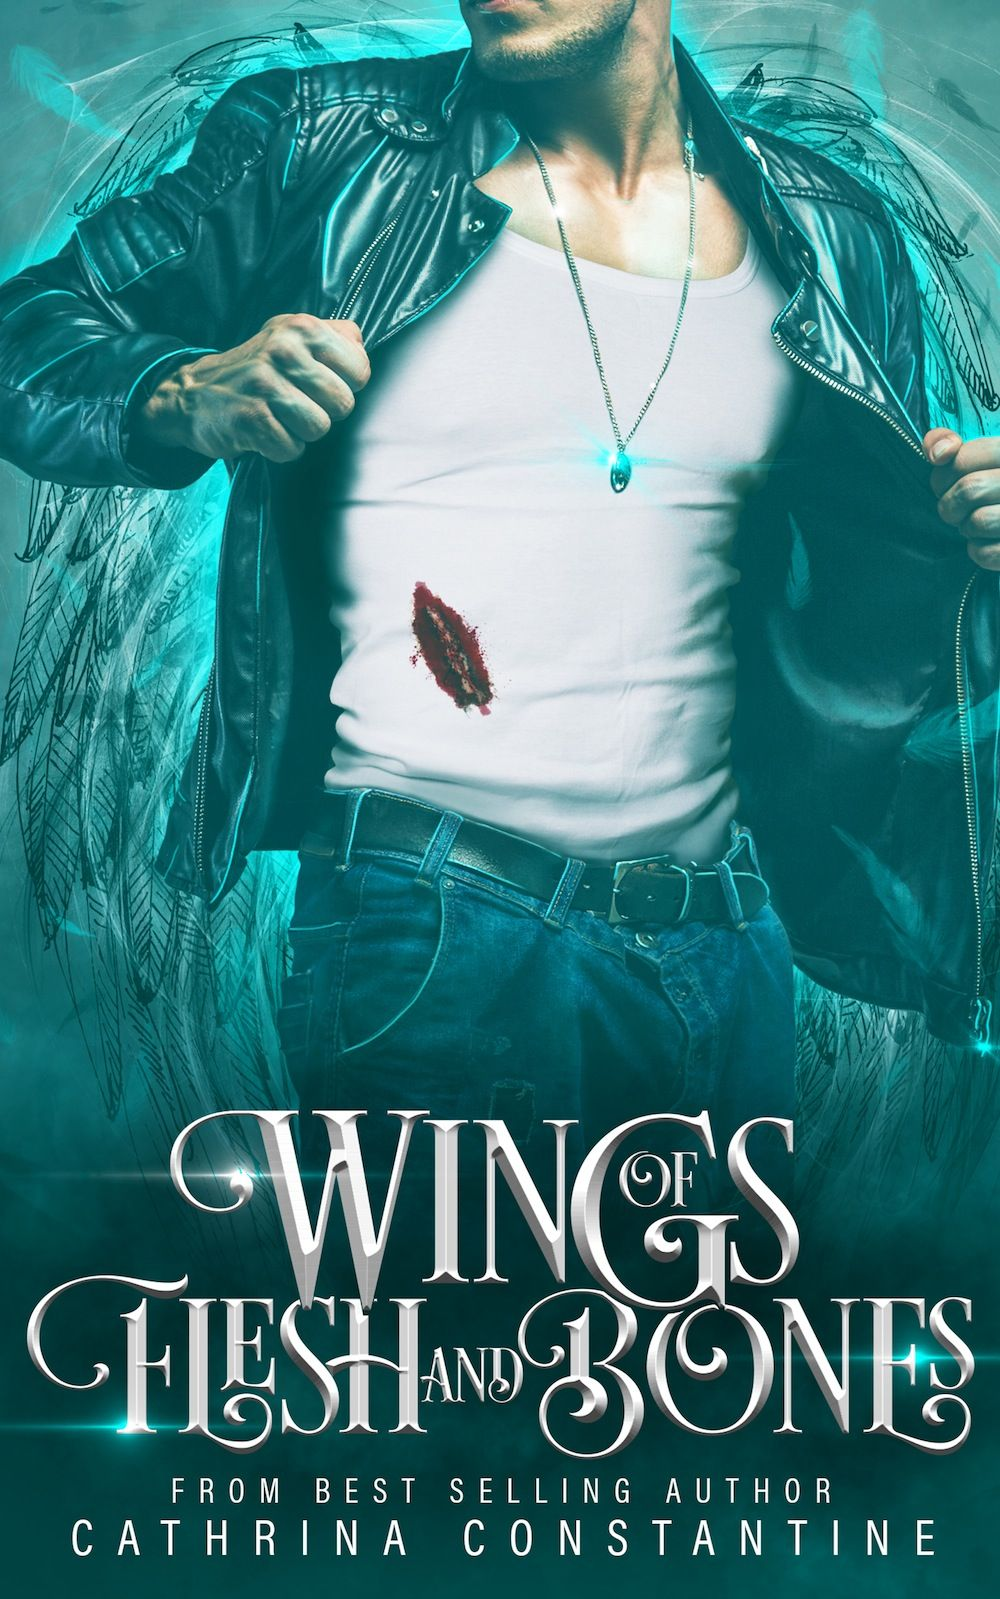 Wings of Flesh and Bones by Cathrina Constantine - Cover Reveal